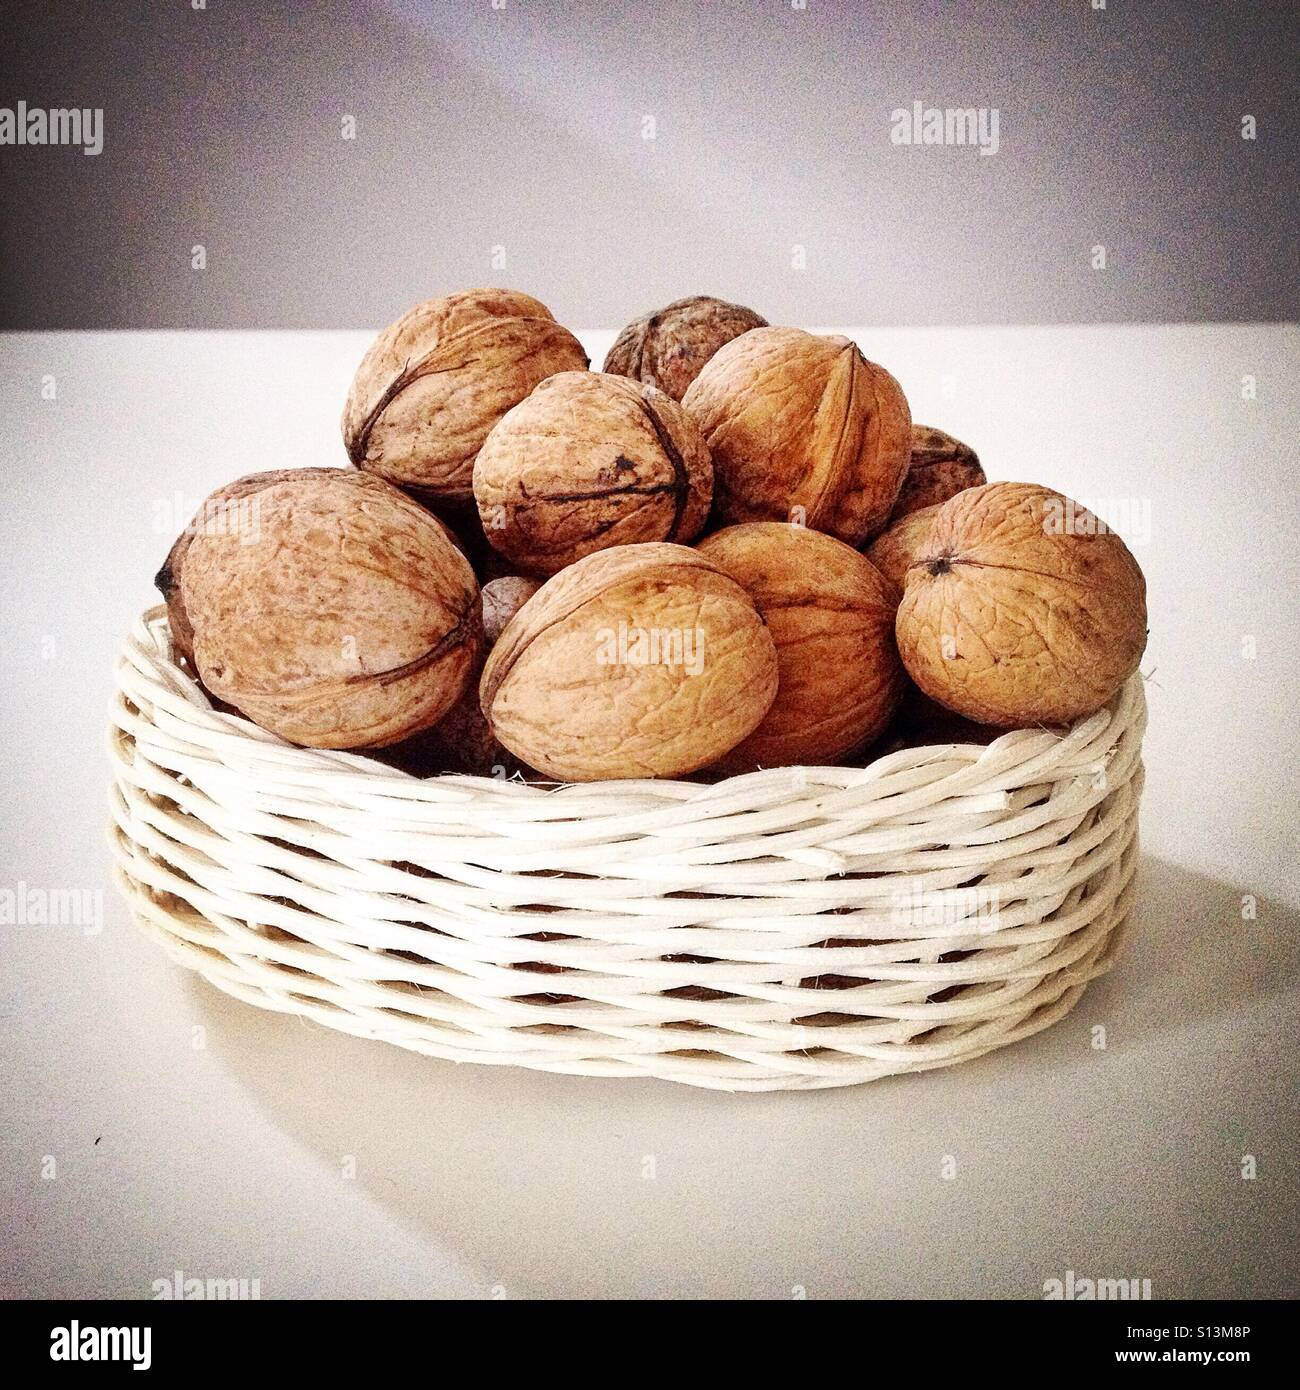 Walnuts on the table - Stock Image